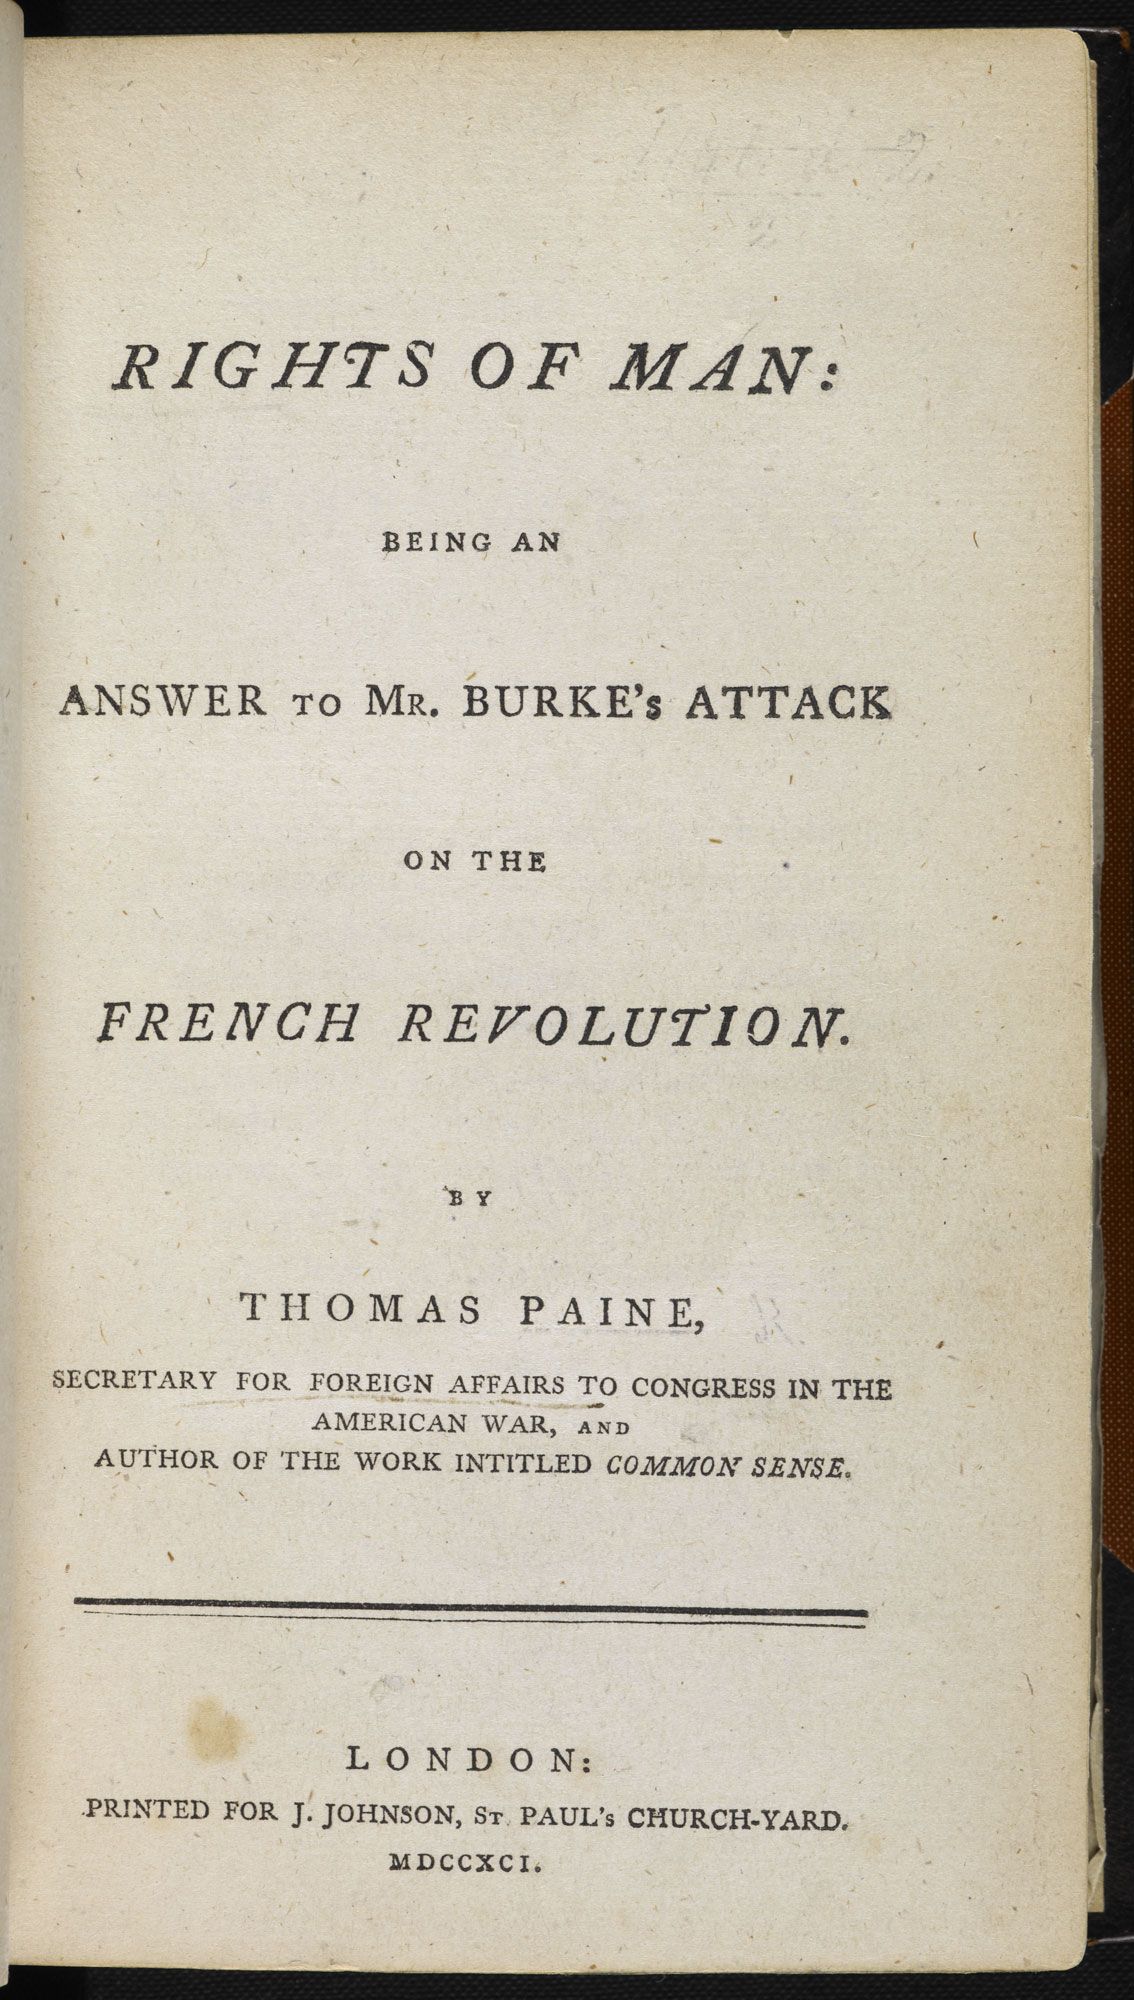 Rights of Man by Thomas Paine [page:title page]